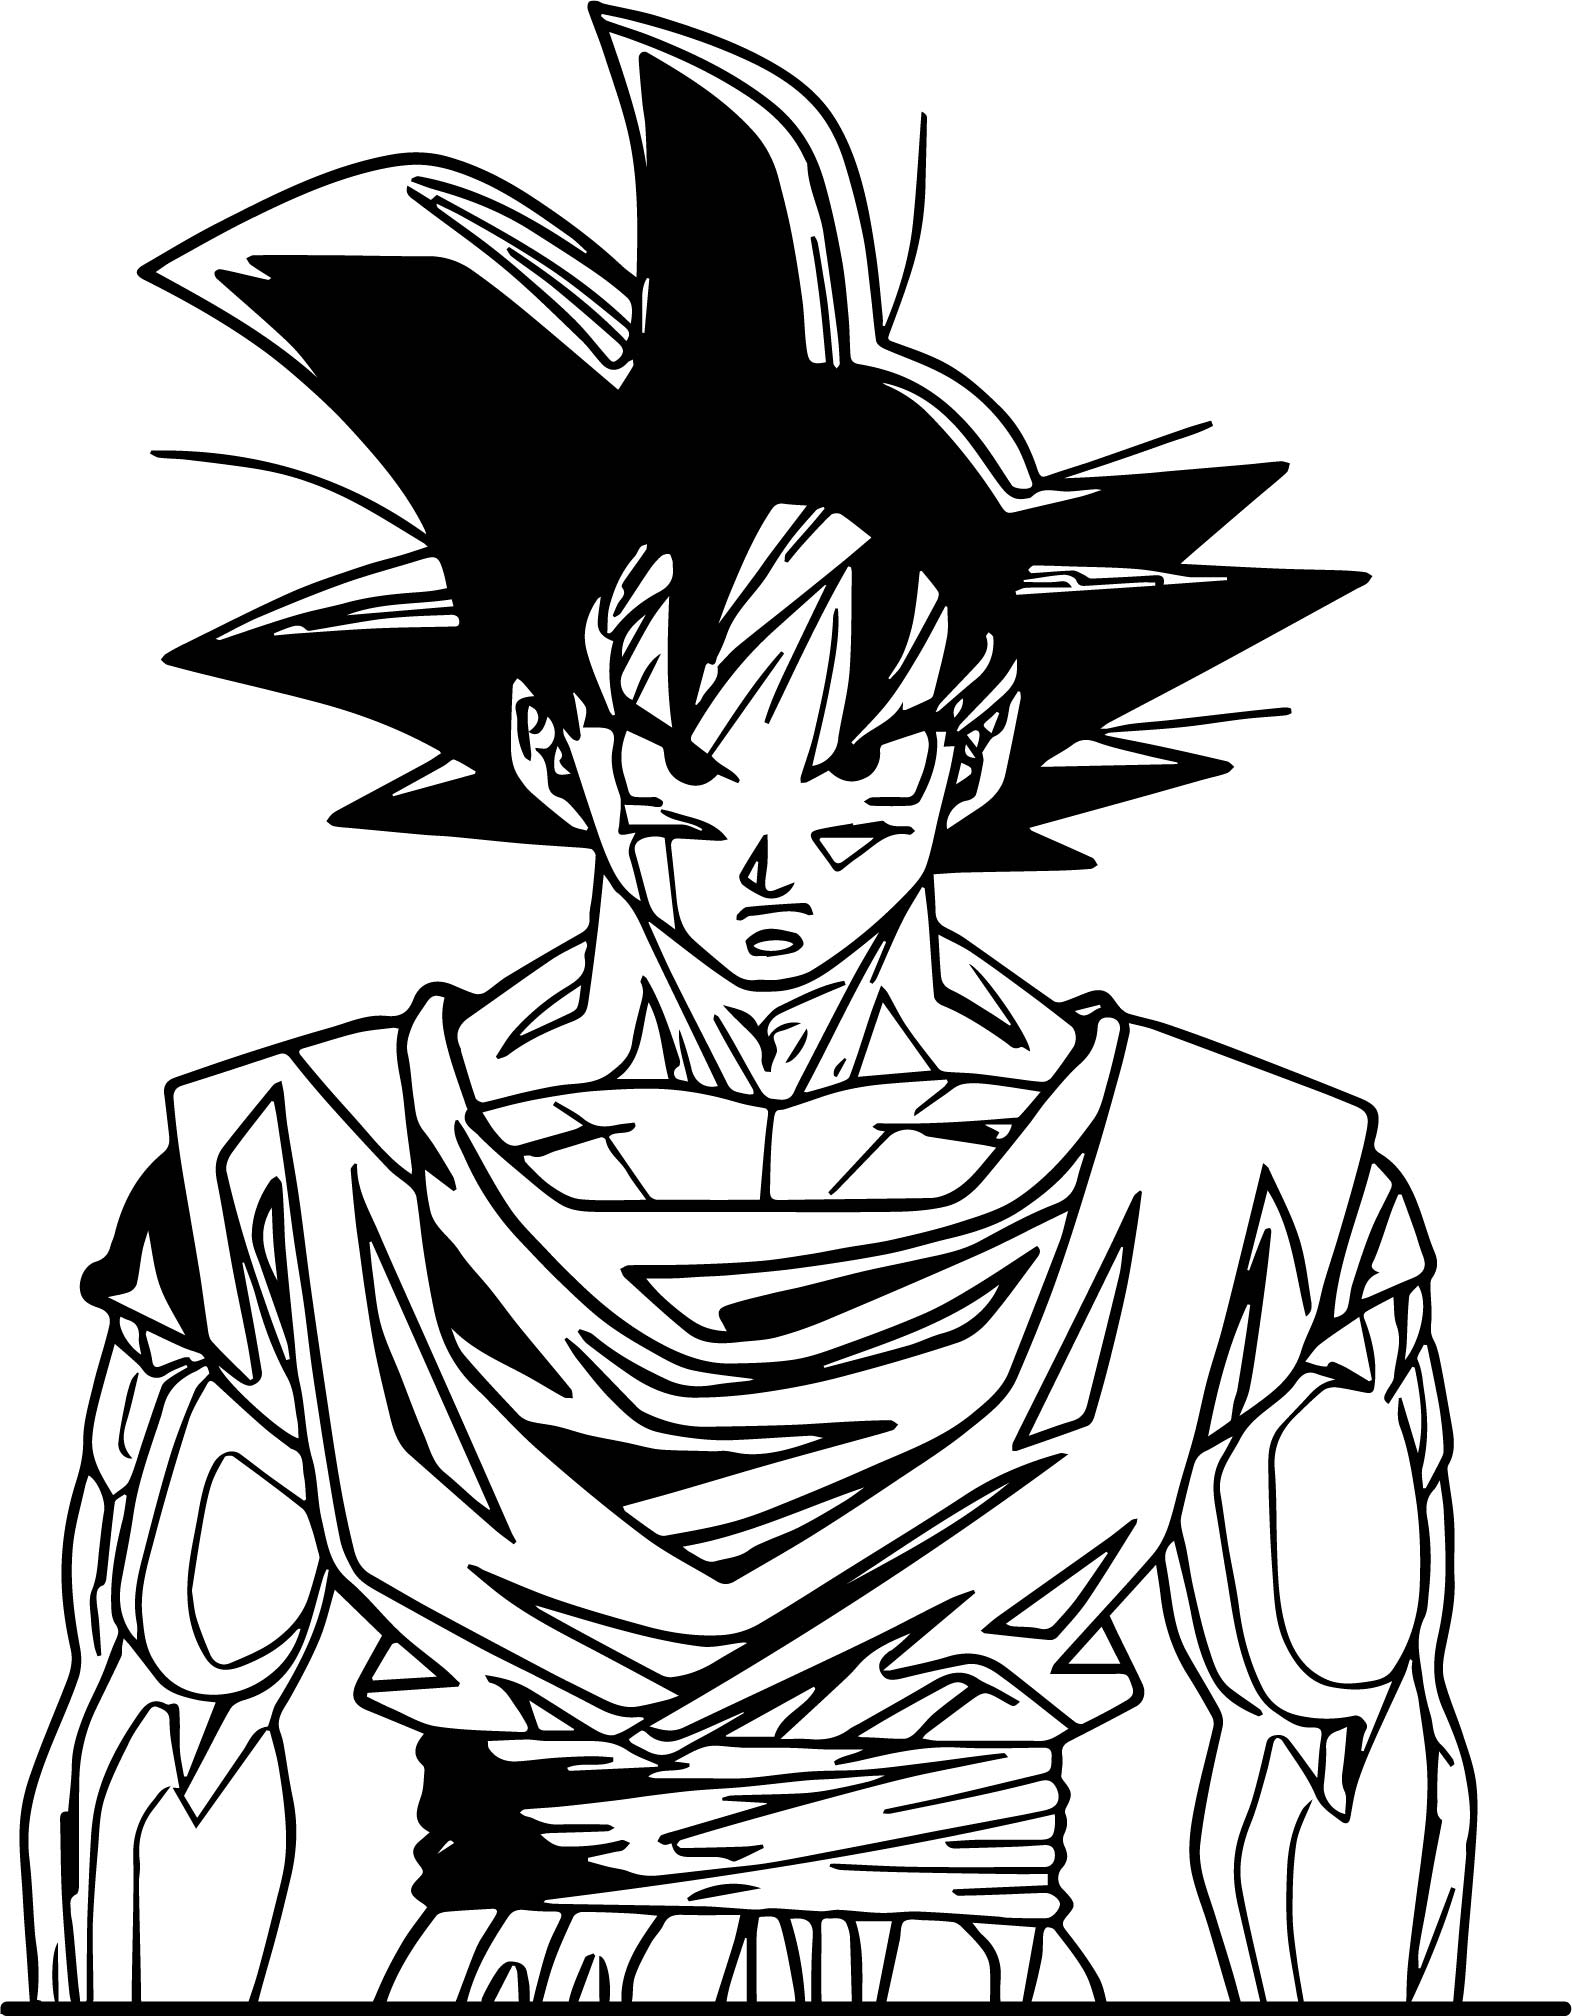 Goku Front View Coloring Page